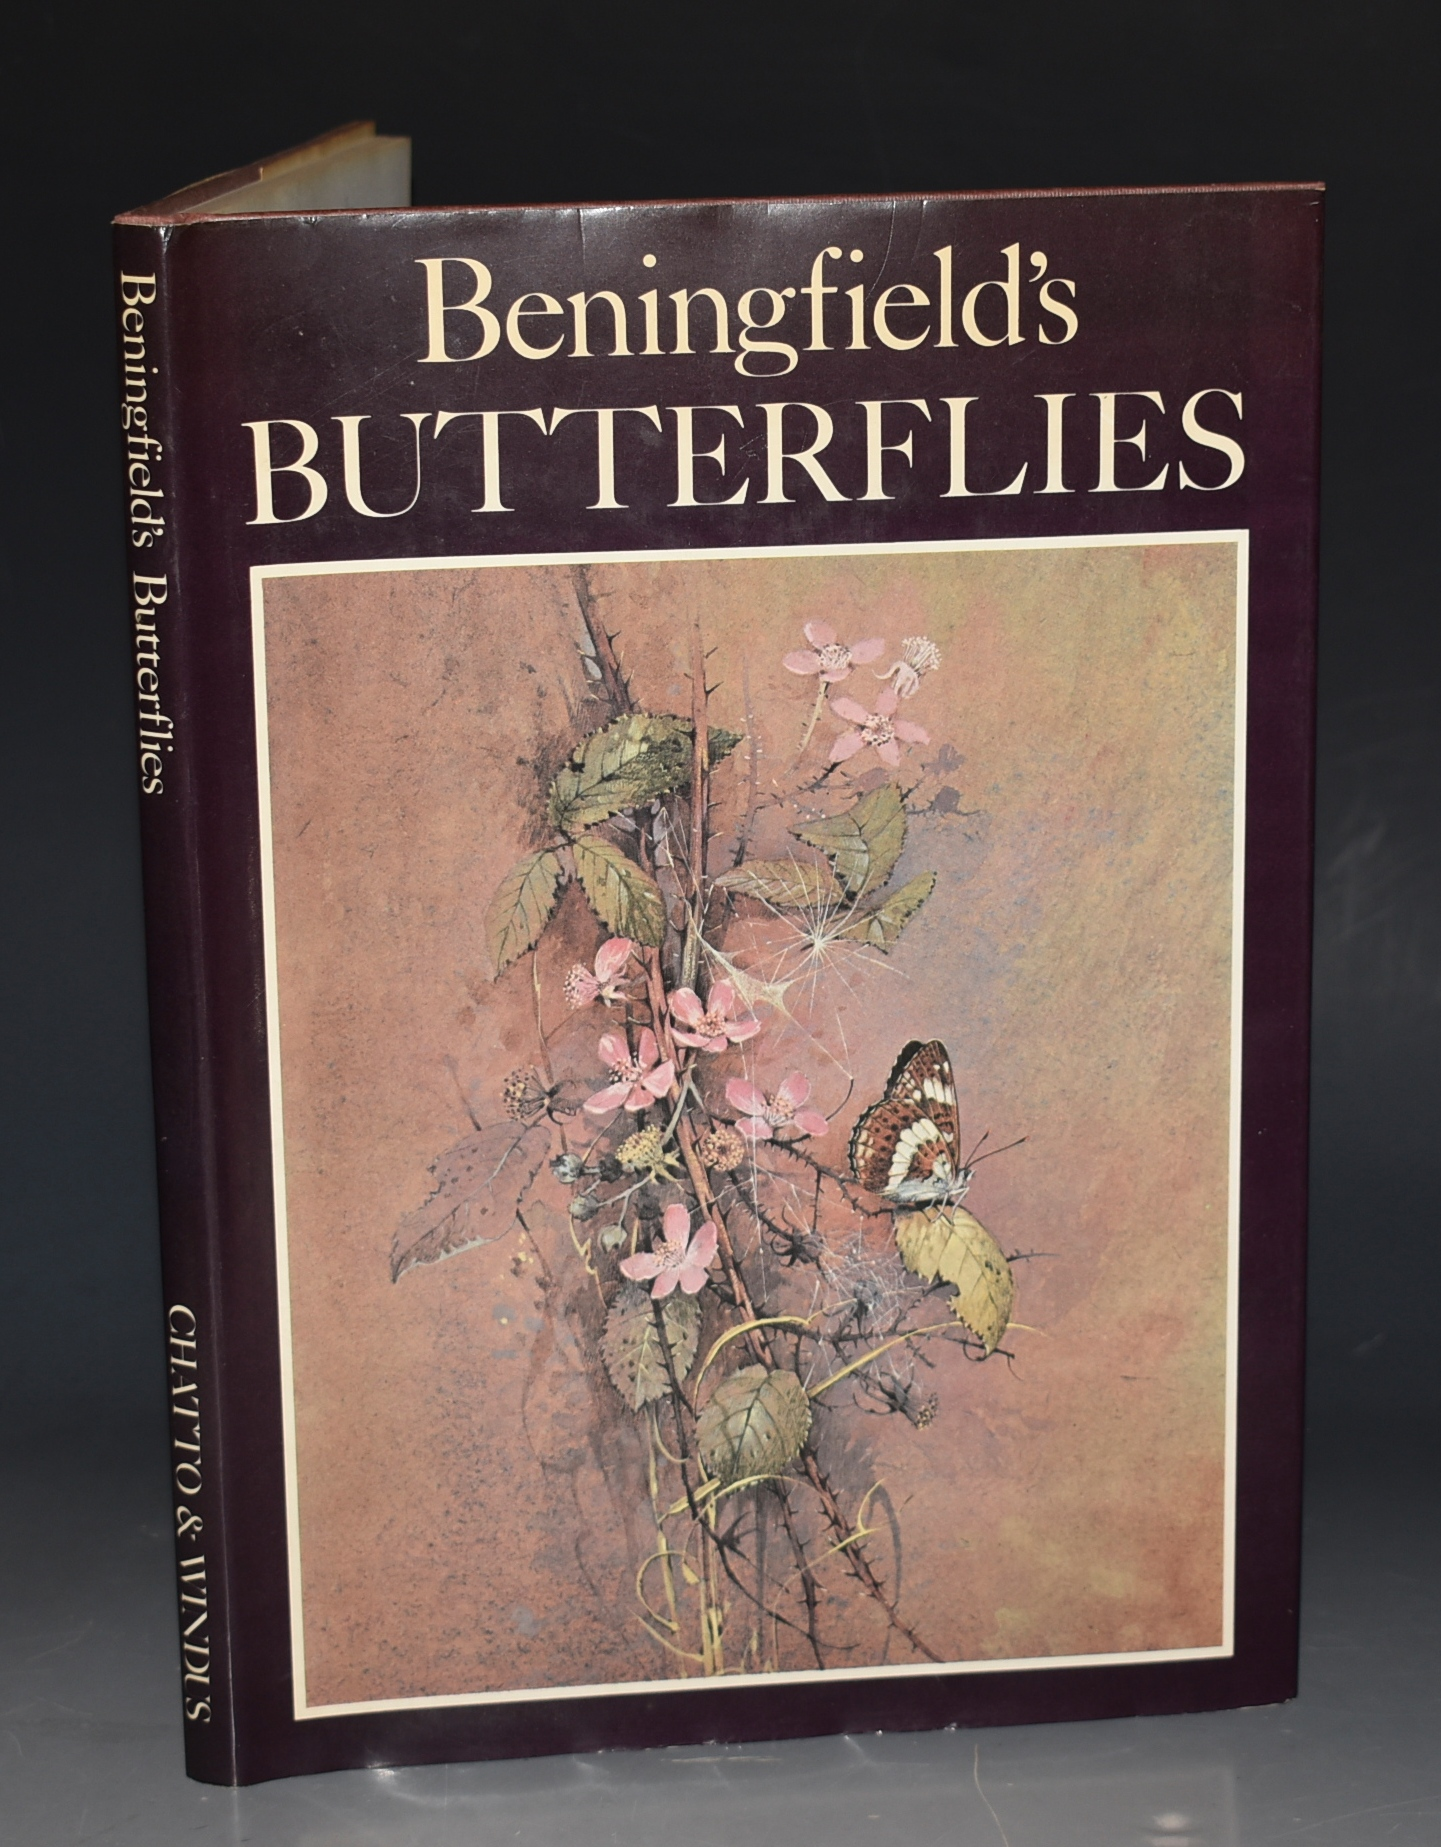 Image for Beningfield's Butterflies. Paintings and Drawings by Gordon beningfield. Text by Robert Goodden.